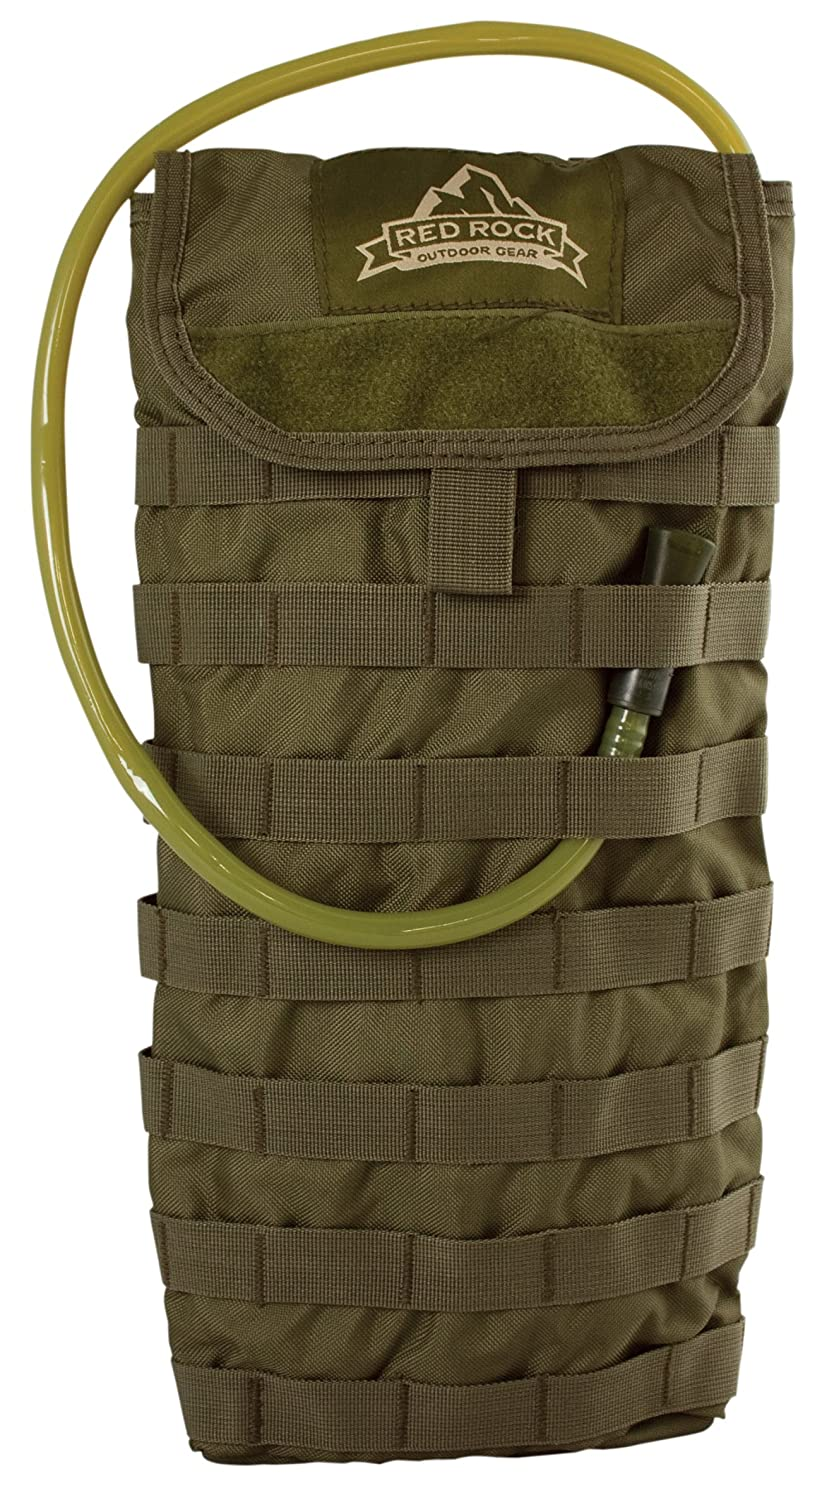 rosso Rock Outdoor Gear Molle Hydration Pack, Olive Drab Drab Drab by rosso Rock Outdoor Gear | Prima i consumatori